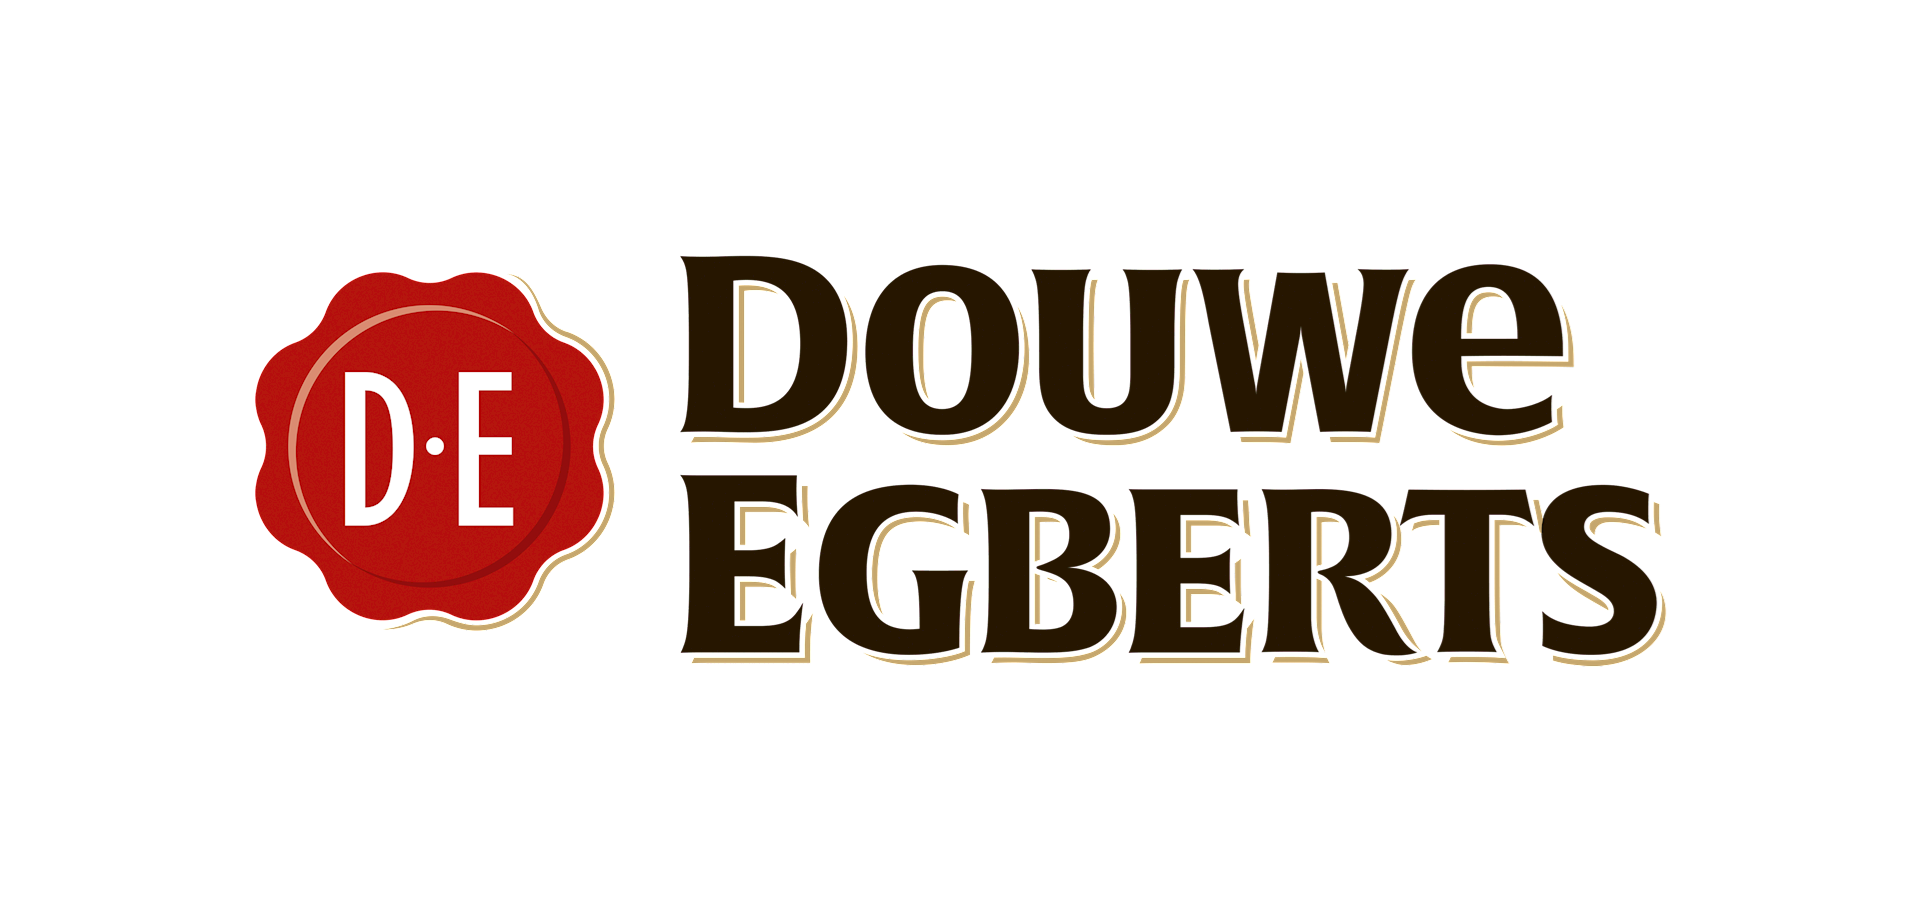 Merkafbeelding DOUWE EGBERTS Coffee Kitchen